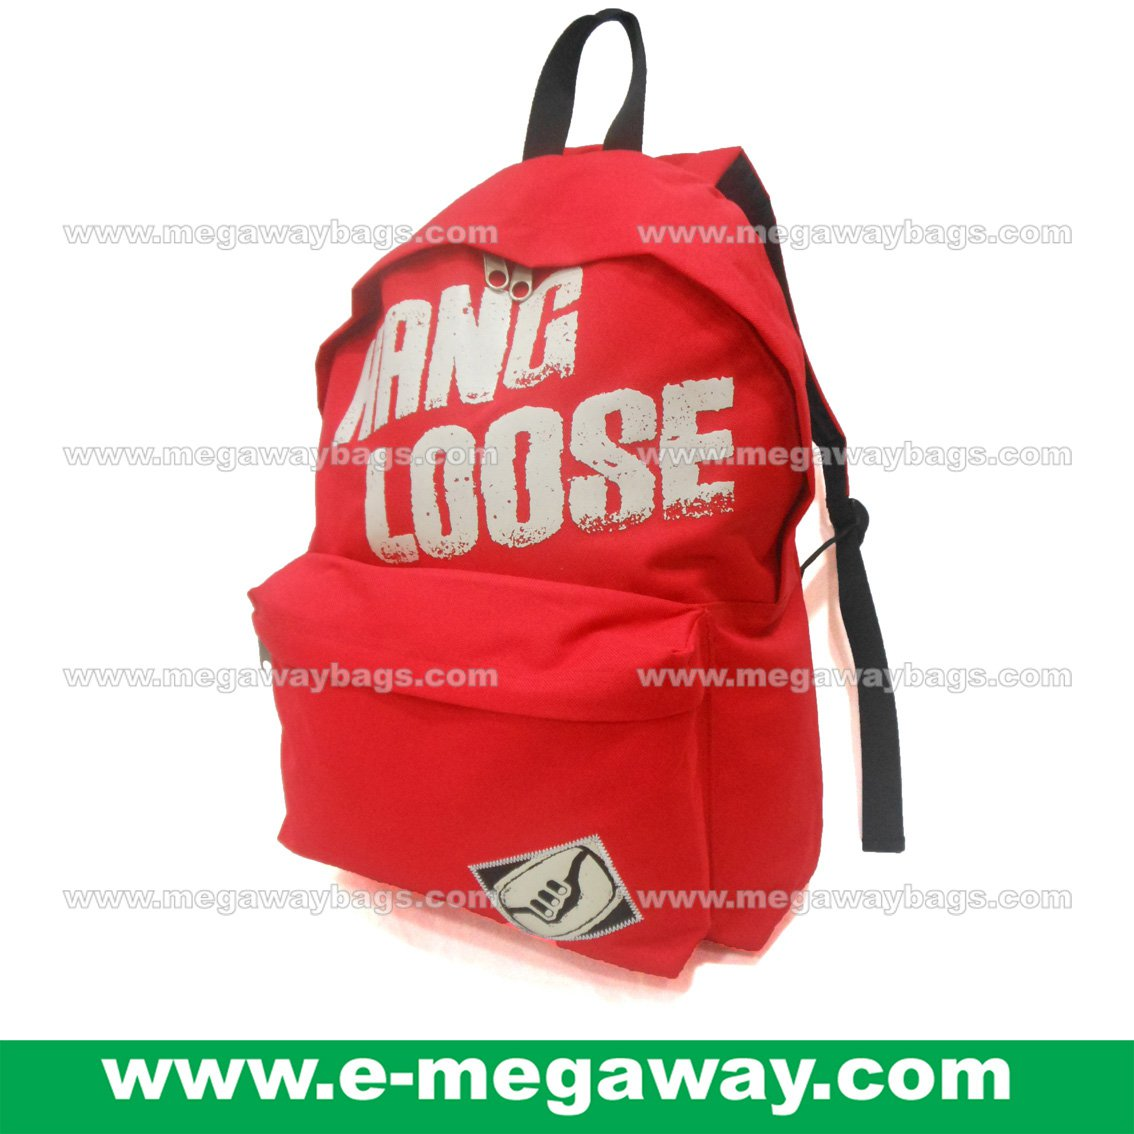 Hang Loose Backpack Nylon Backpack Rucksack Day Pack Sports Outdoor MegawayBags #CC- 0982A